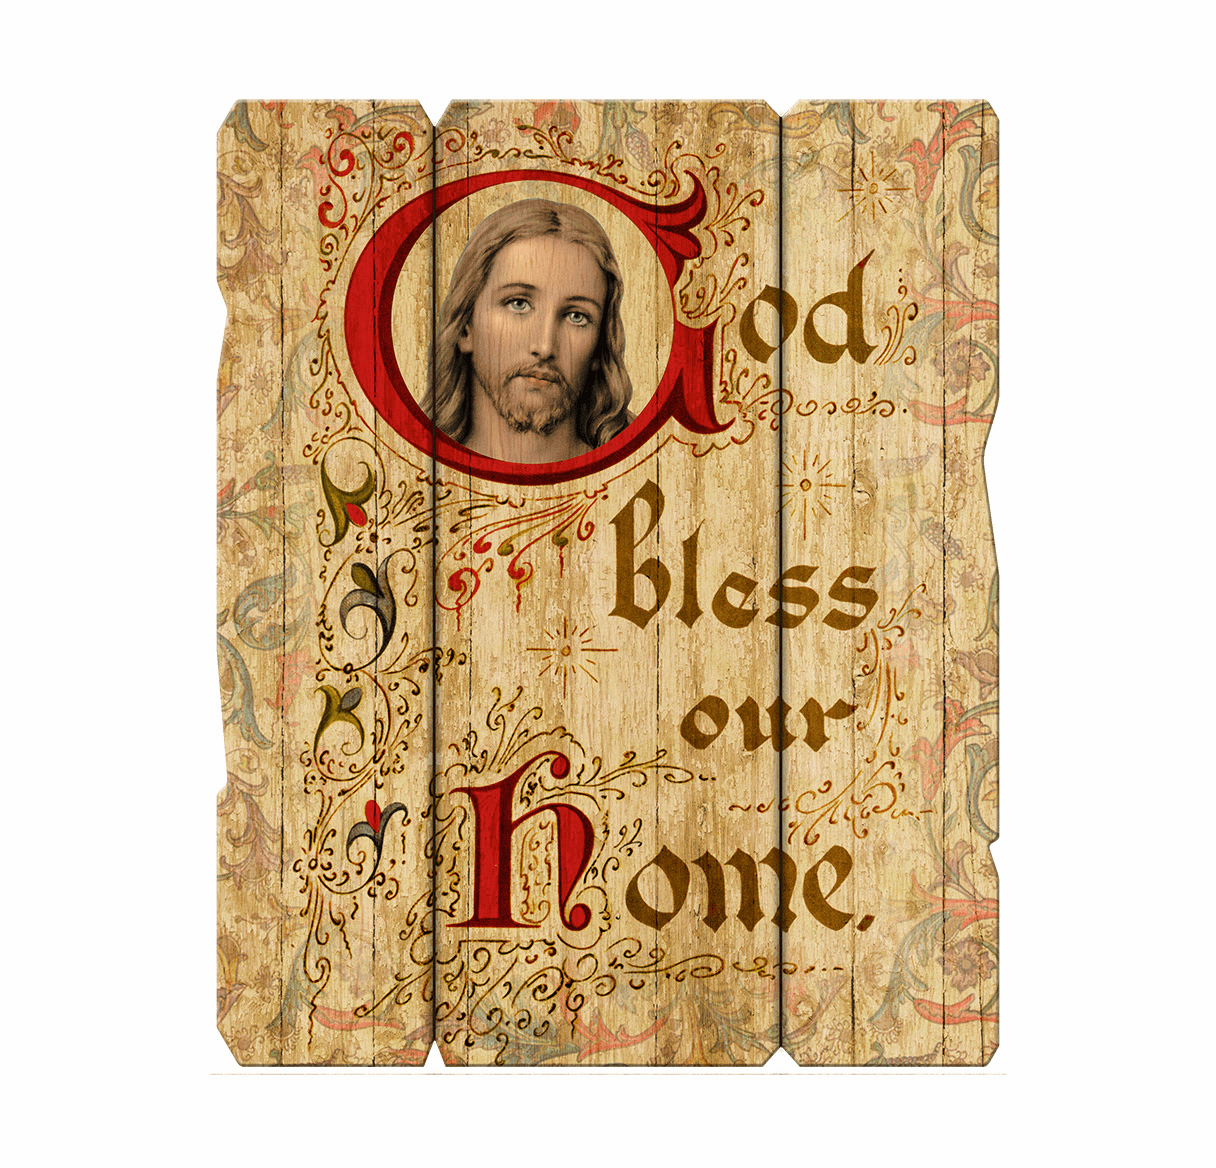 Hirten God Bless Our Home Vintage Wall Plaque